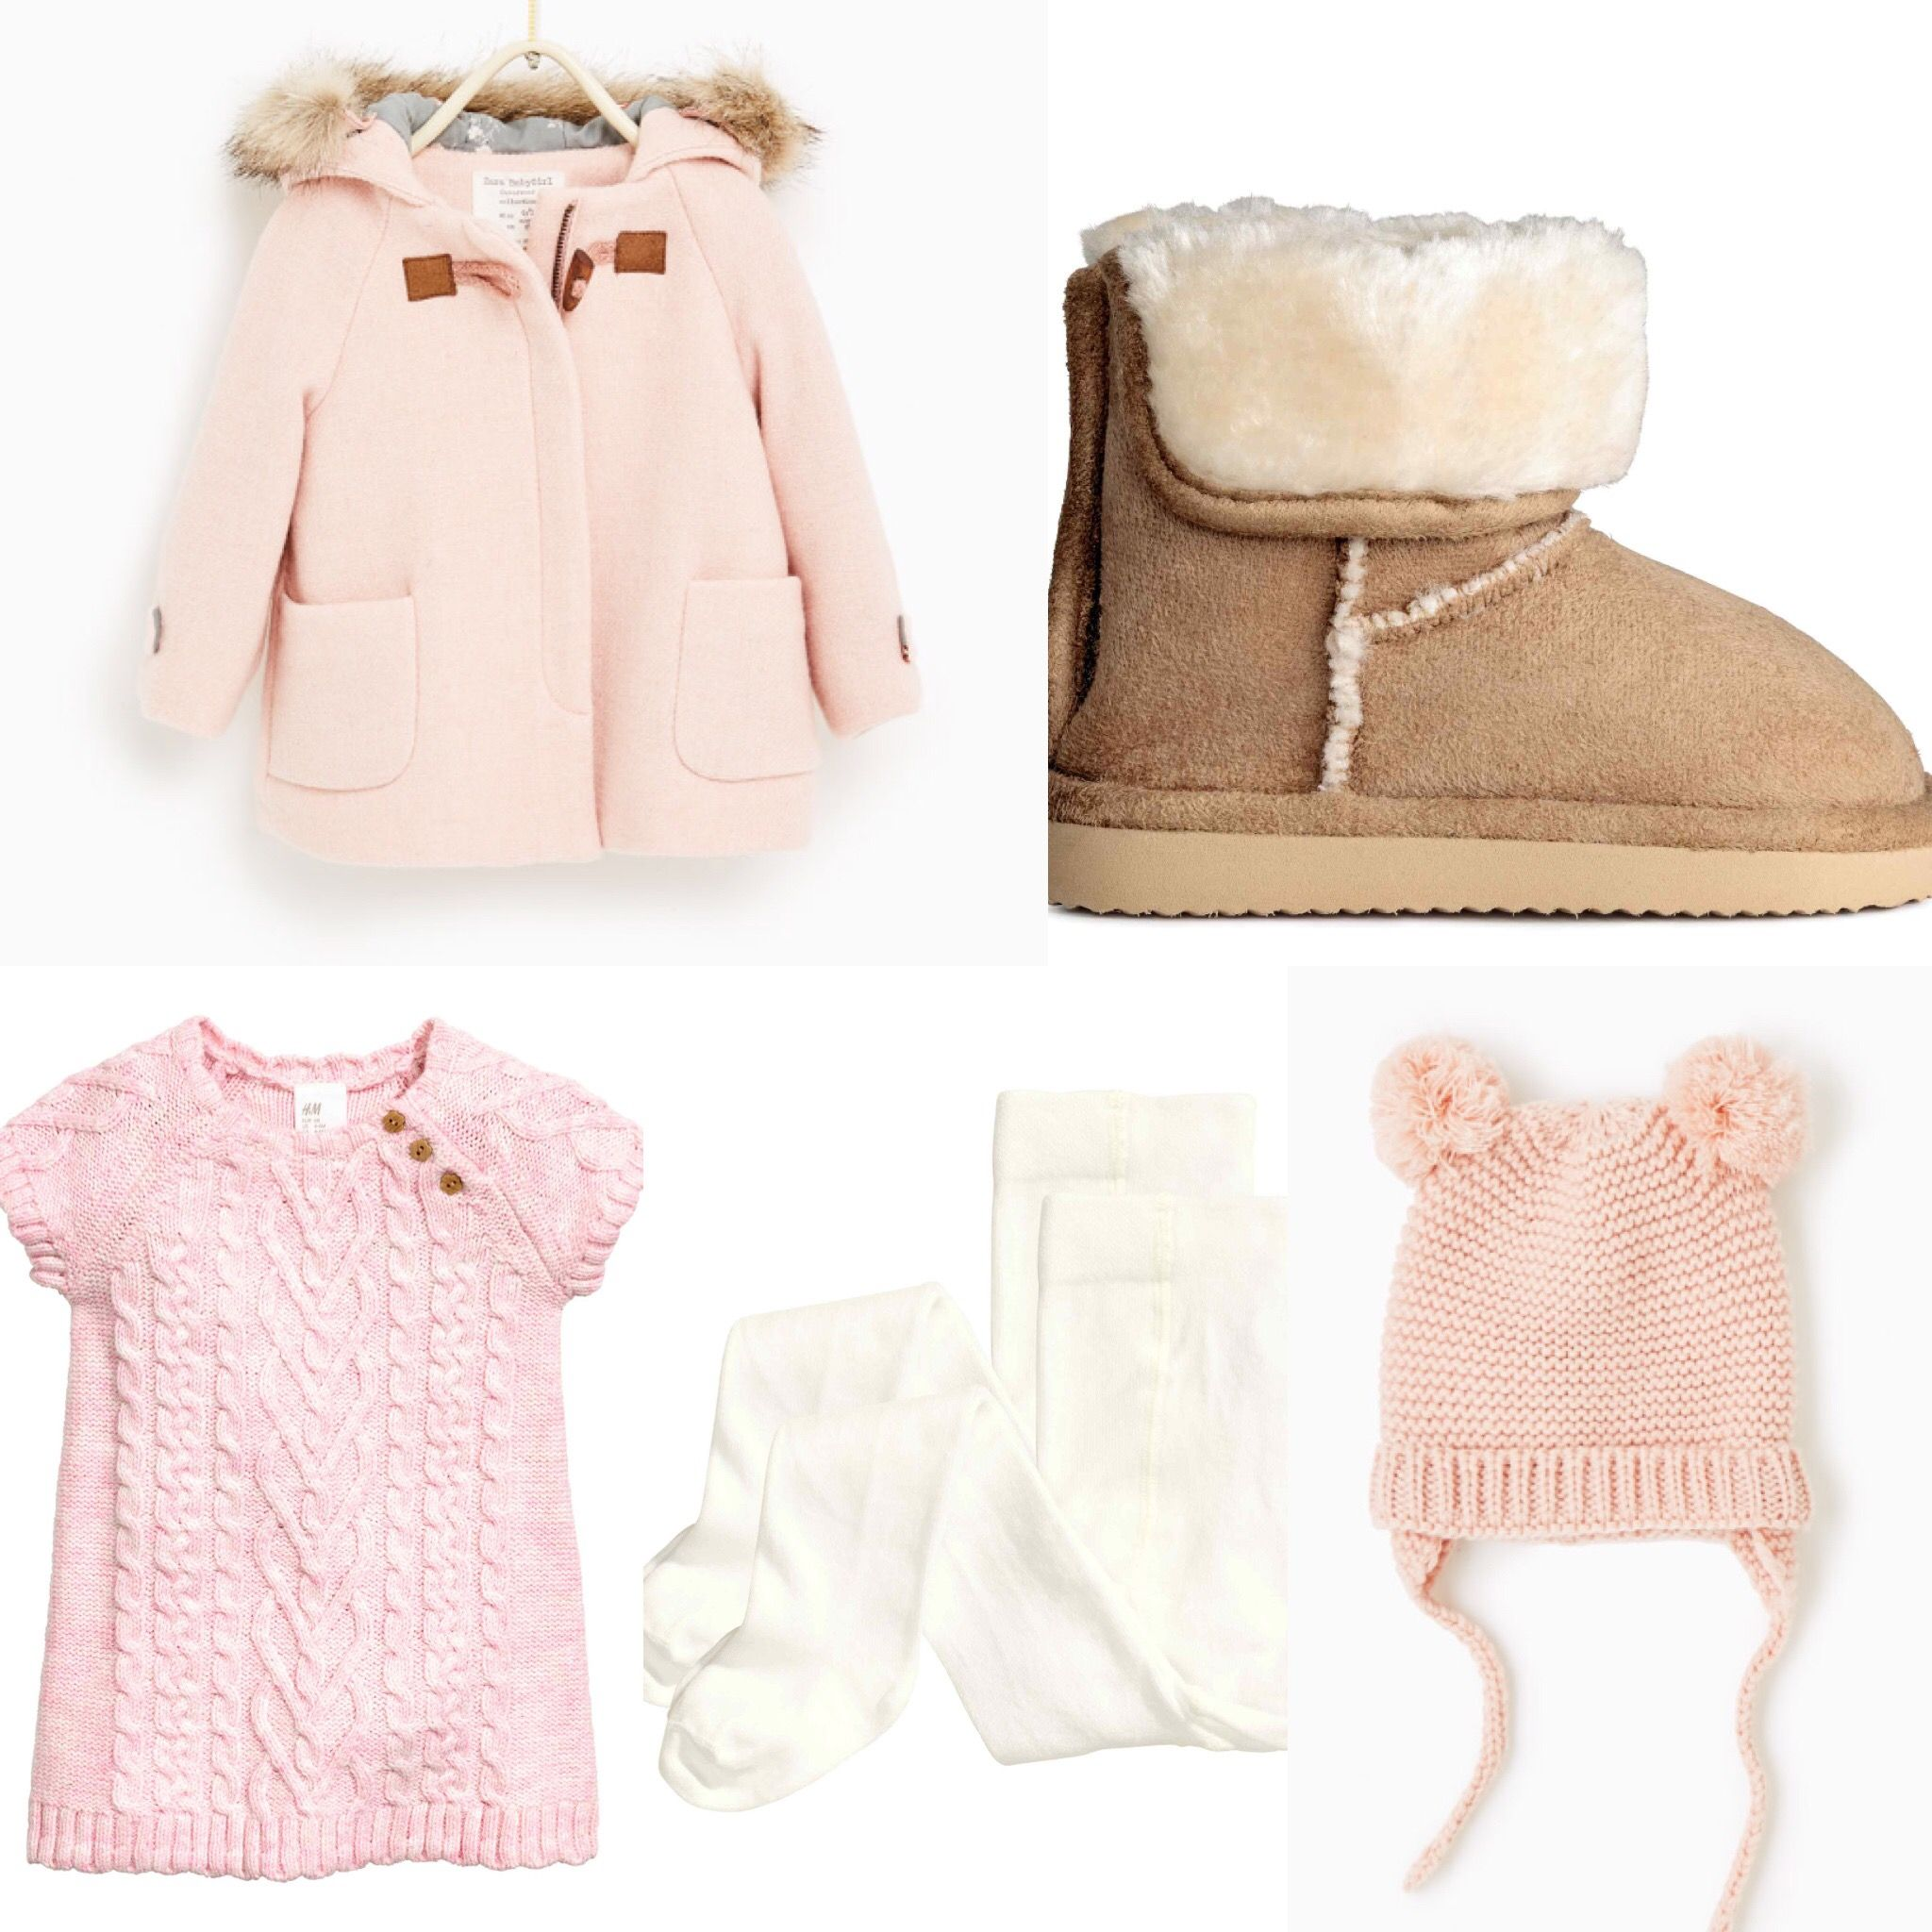 38e42eb0554e HM, Zara 2016 fall collection baby girl outfit idea. HM knitted dress, ugg  boots, tights, Zara pink coat, pink hat.